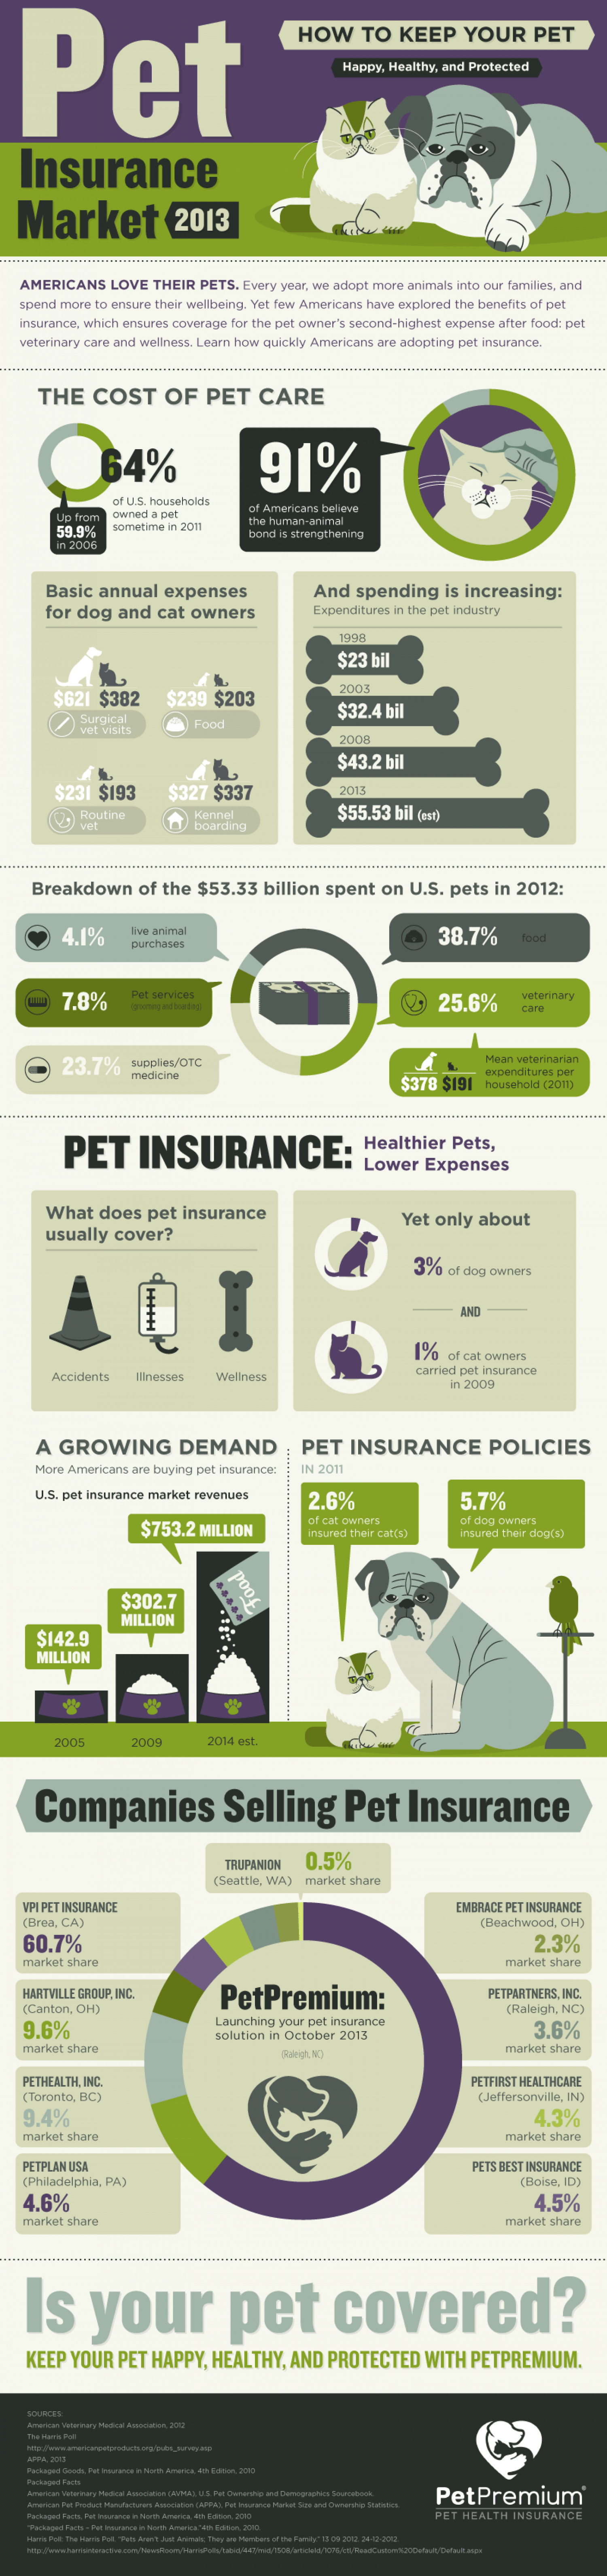 Pet Insurance Market 2013 Infographic